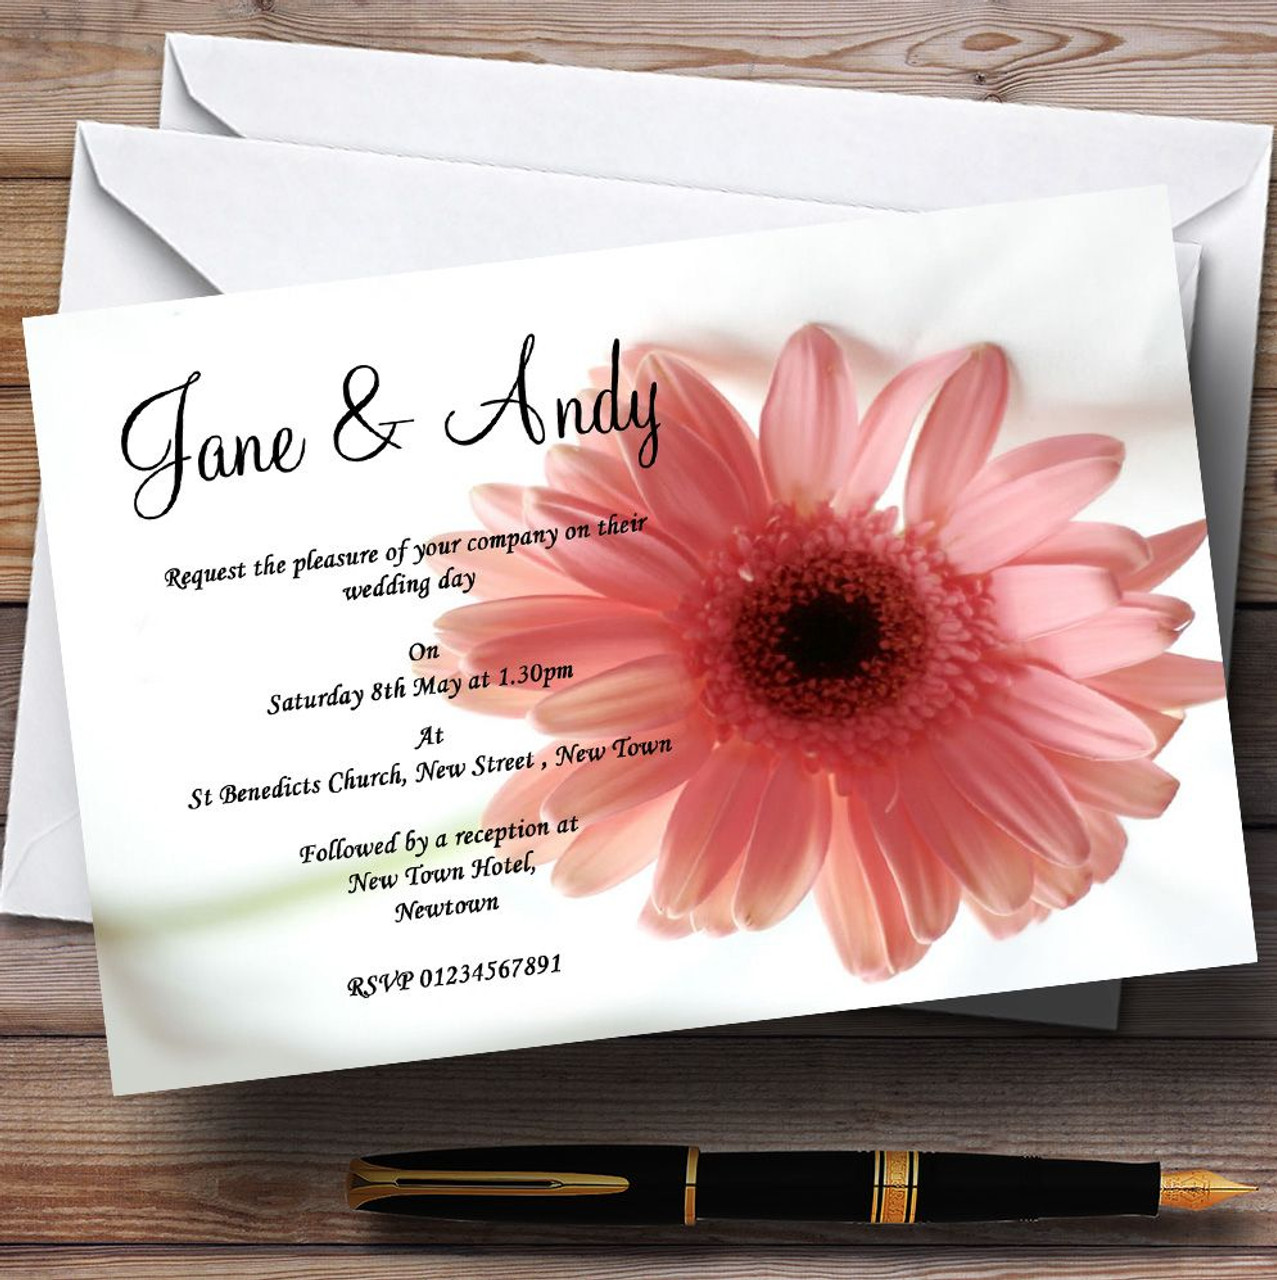 Stunning Classy & Subtle Pink Flower Personalised Wedding ...